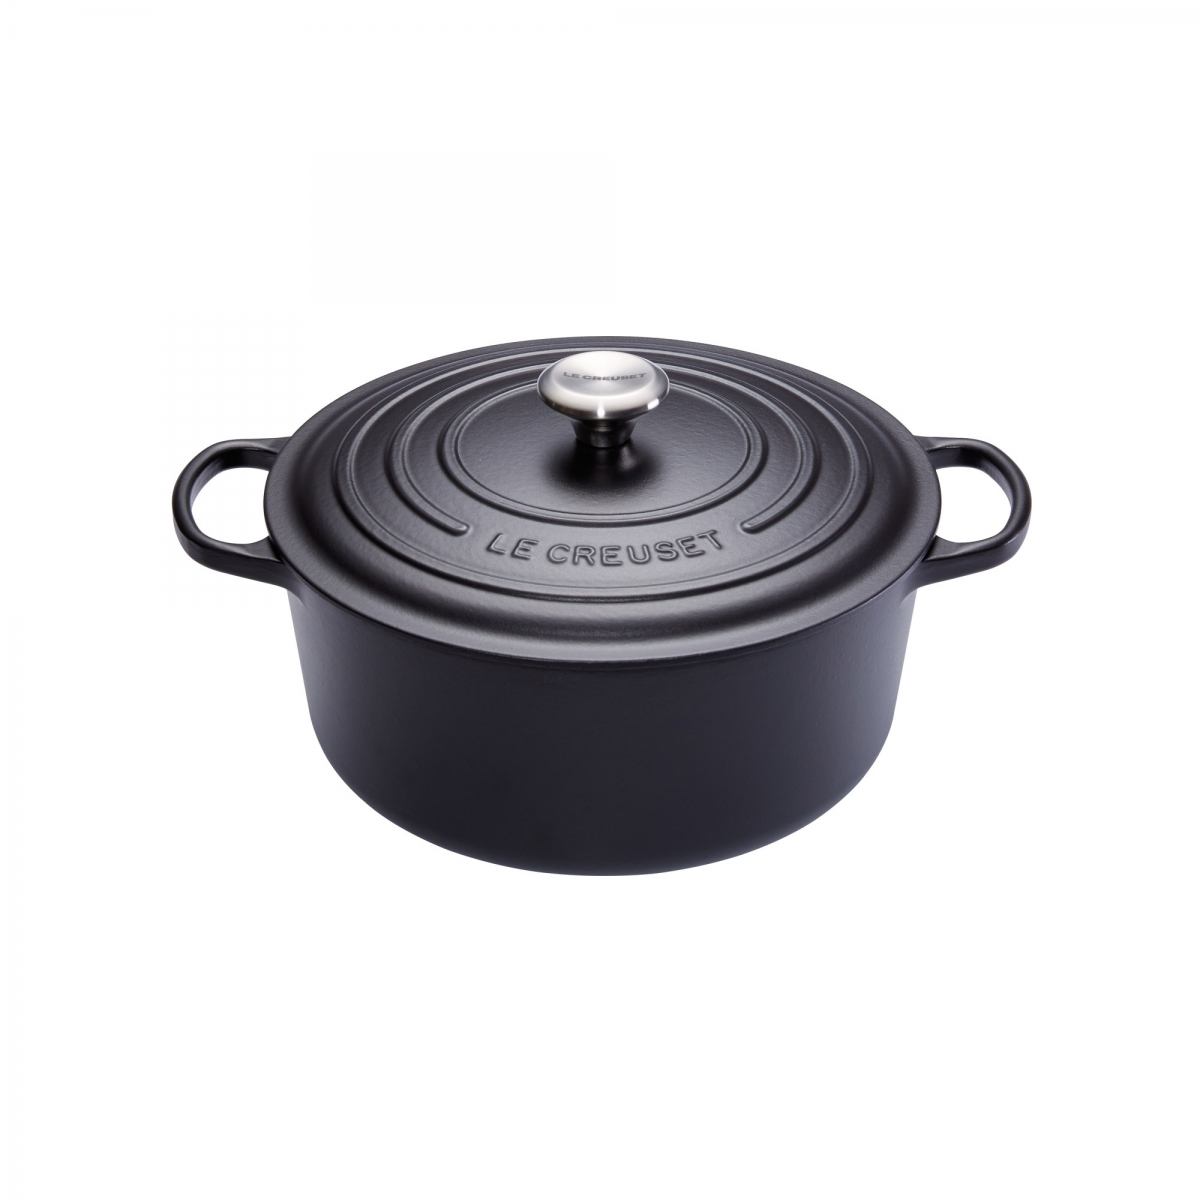 cocotte en fonte ronde 24 cm noir mat le creuset signature. Black Bedroom Furniture Sets. Home Design Ideas